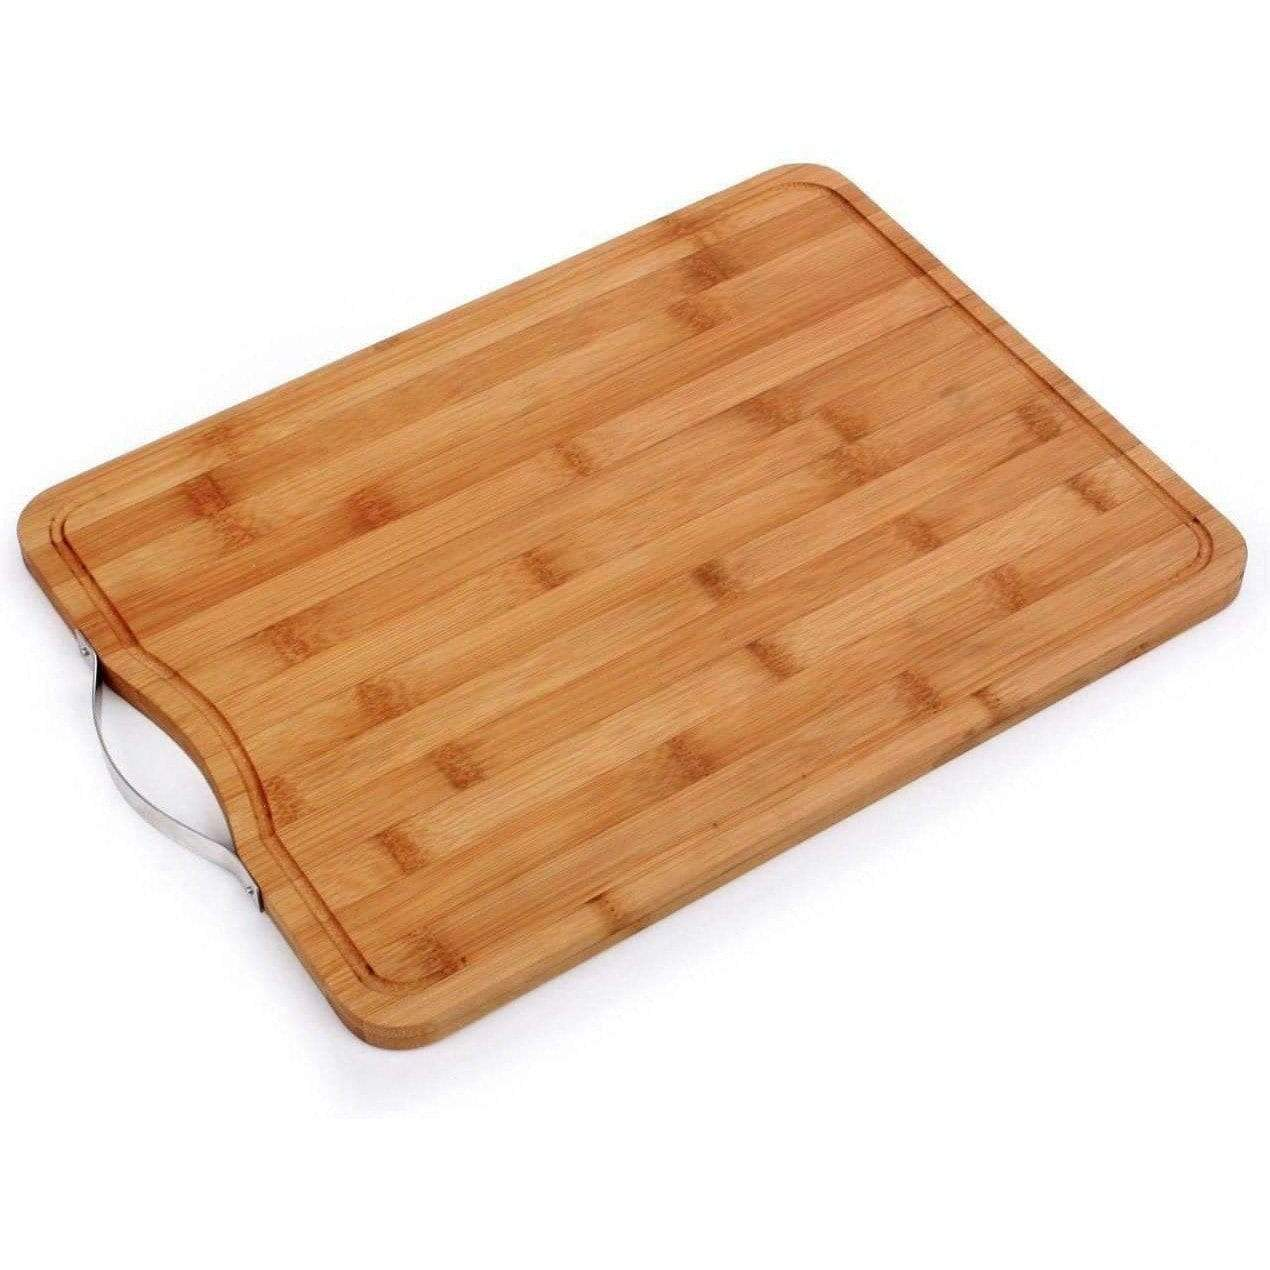 LivingTrend Kitchen Bamboo Cutting Board